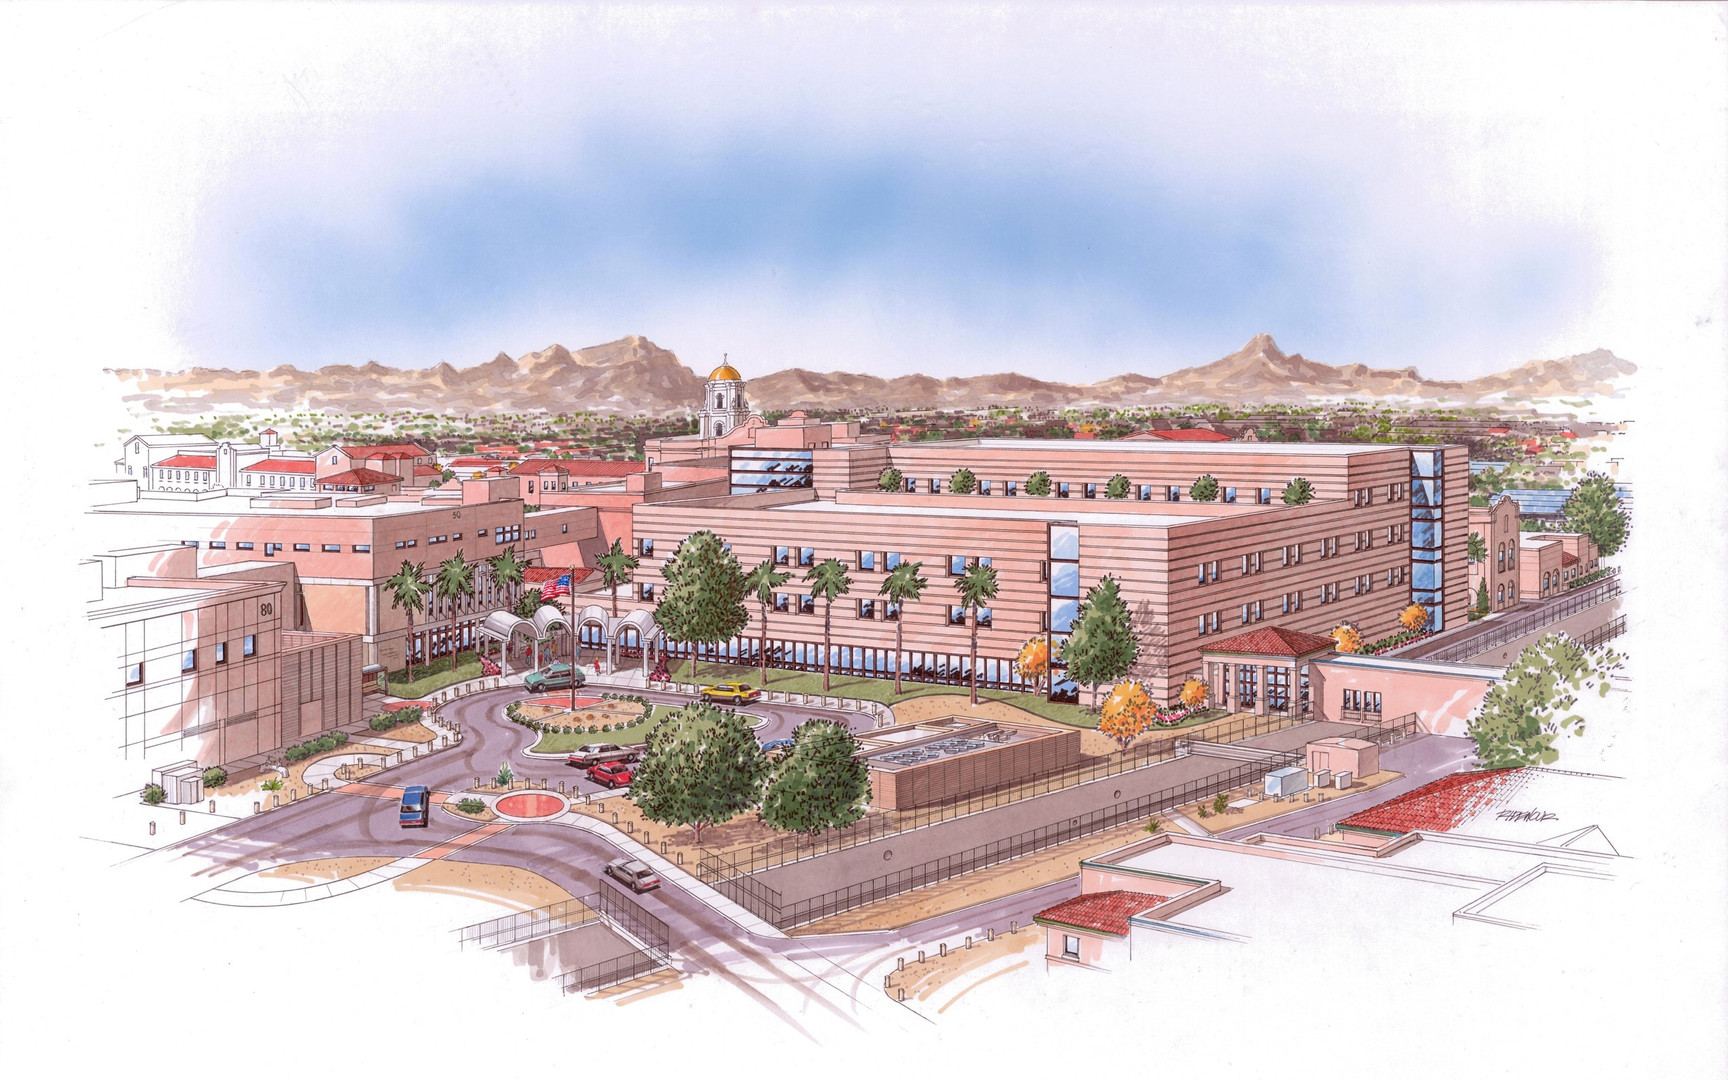 medical, surgical, arizona, healthcare, tuscon, construction, spur design, intensive care unit, plumbing, electrical, clinical, architectural, engineering, interior design, oklahoma